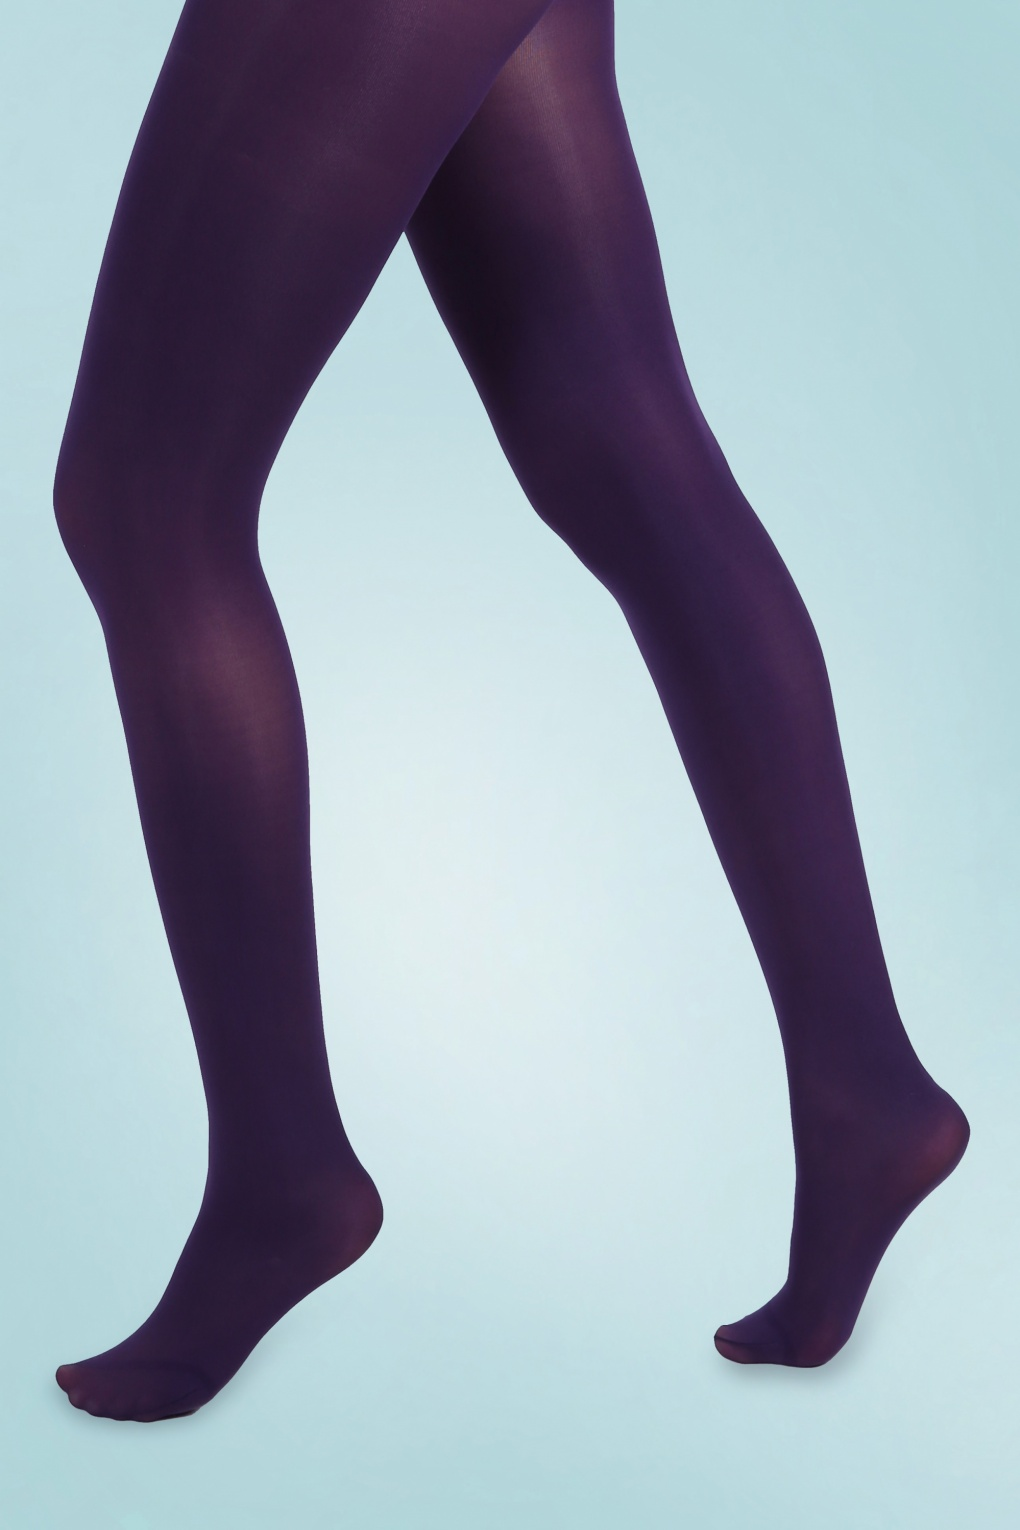 1960s Tights, Stockings, Panty Hose, Knee High Socks 60s Opaque Tights in Purple £7.11 AT vintagedancer.com